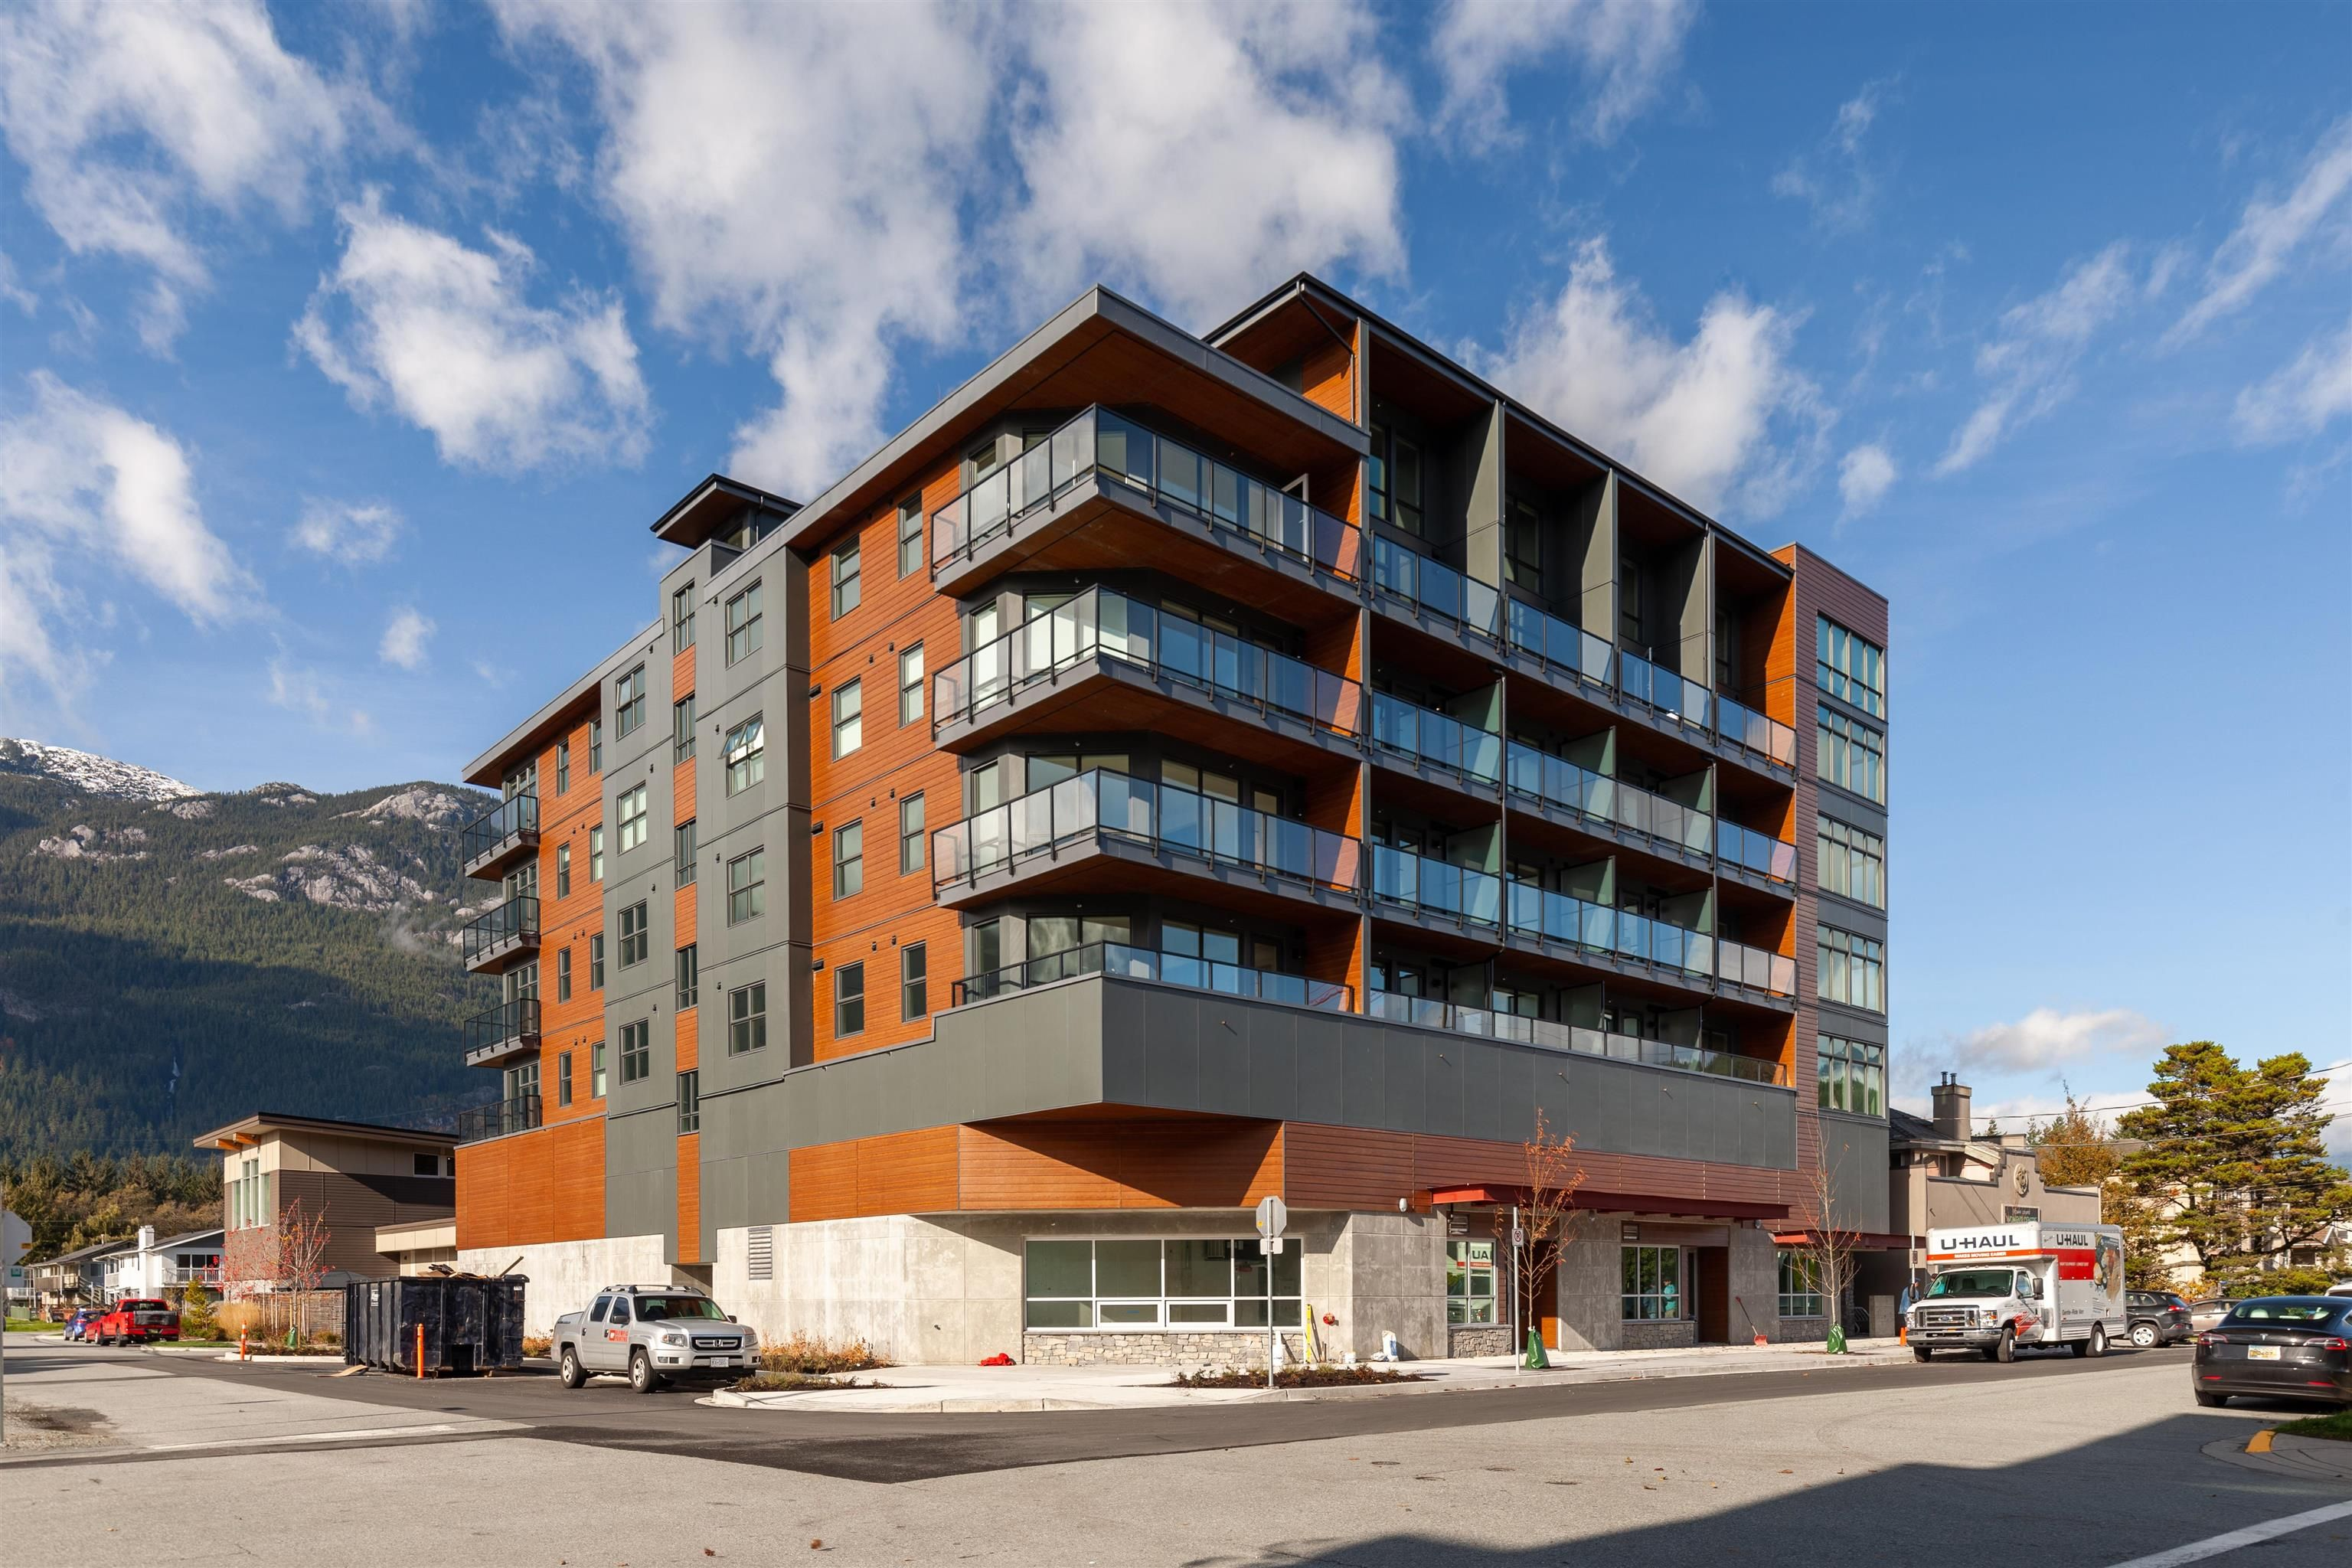 """Main Photo: 312 38013 THIRD Avenue in Squamish: Downtown SQ Condo for sale in """"THE LAUREN"""" : MLS®# R2625827"""